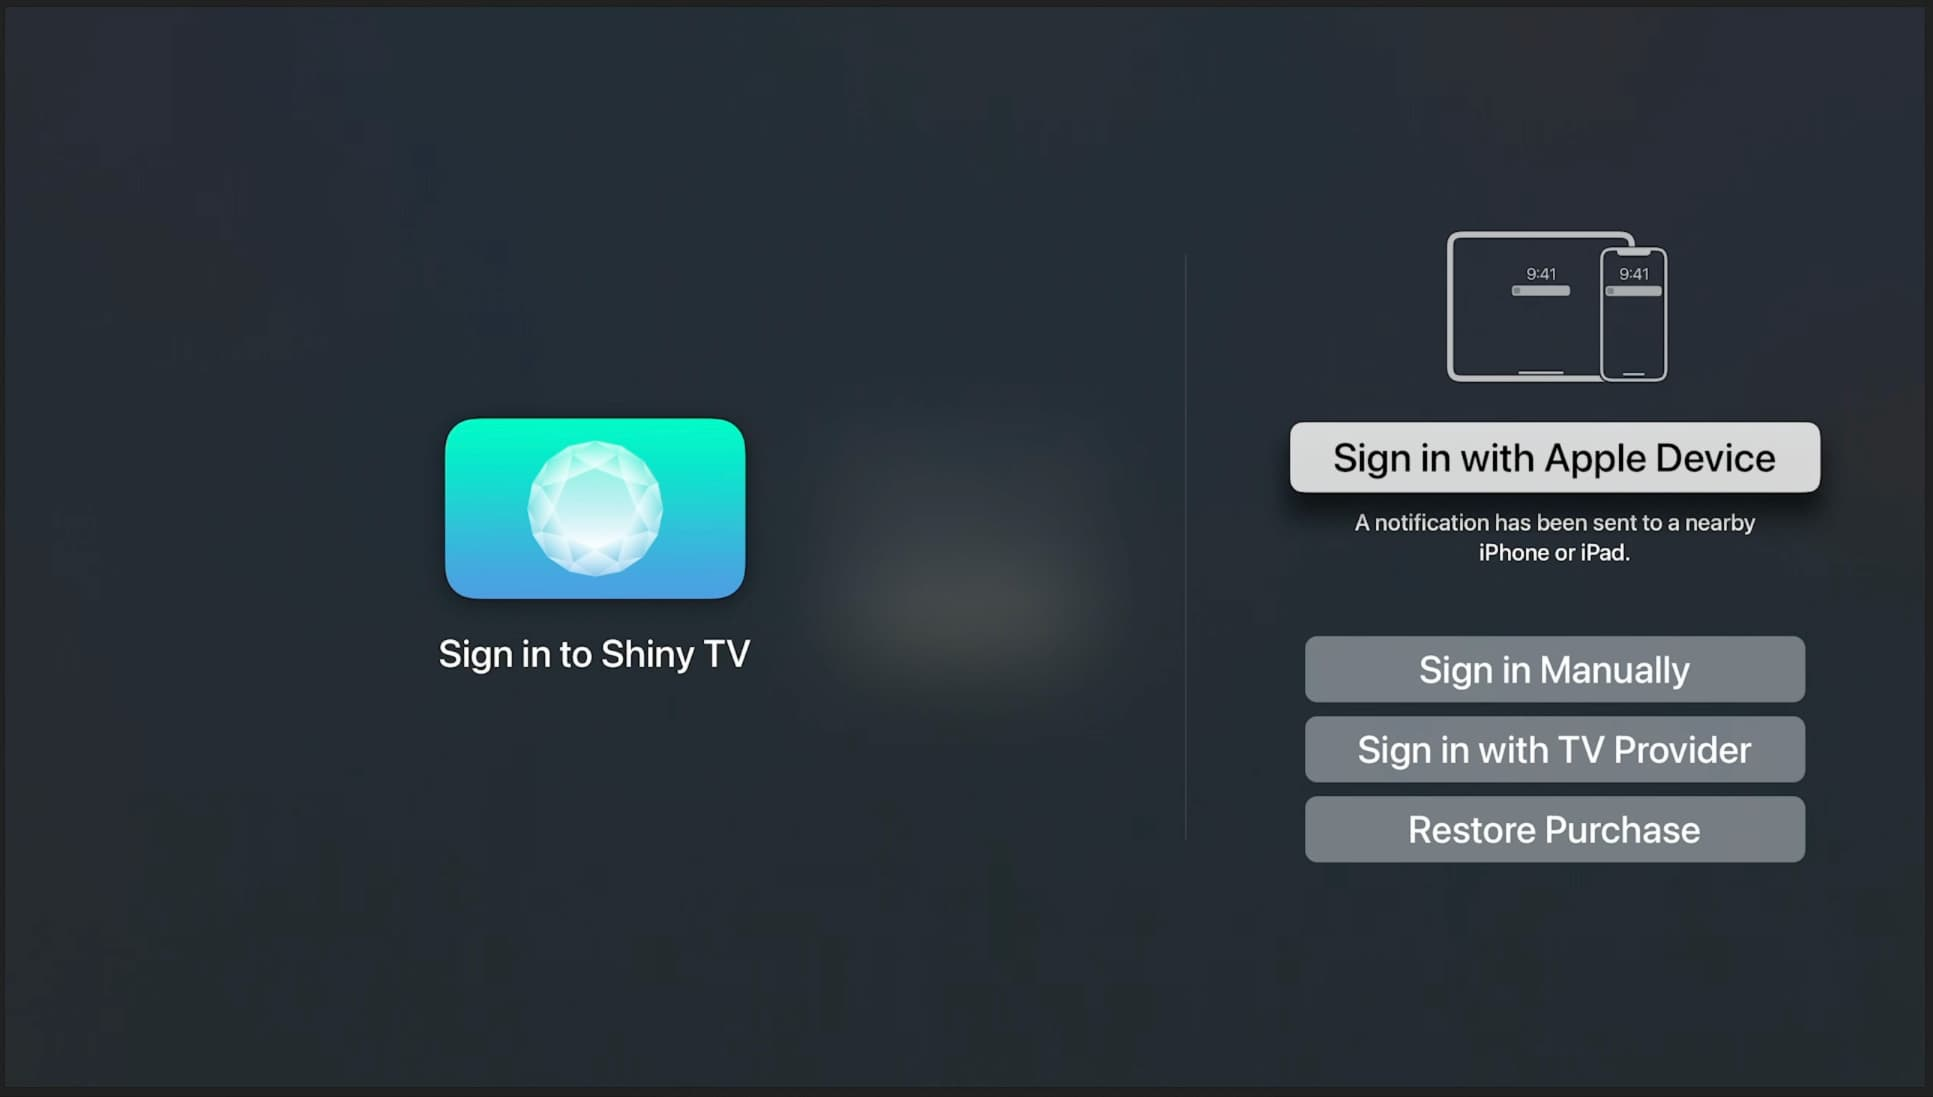 An Image showing the Sign in with Apple Device option highlighted on Apple TV